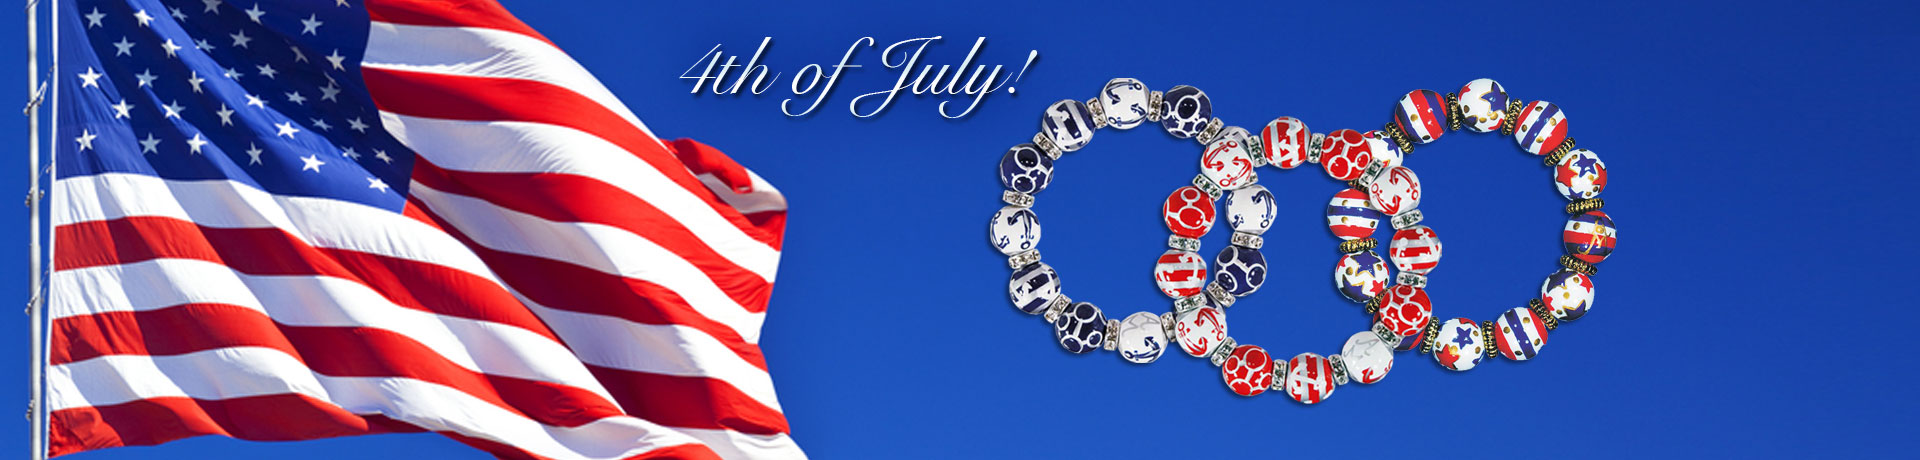 4th-of-july-Banner-new